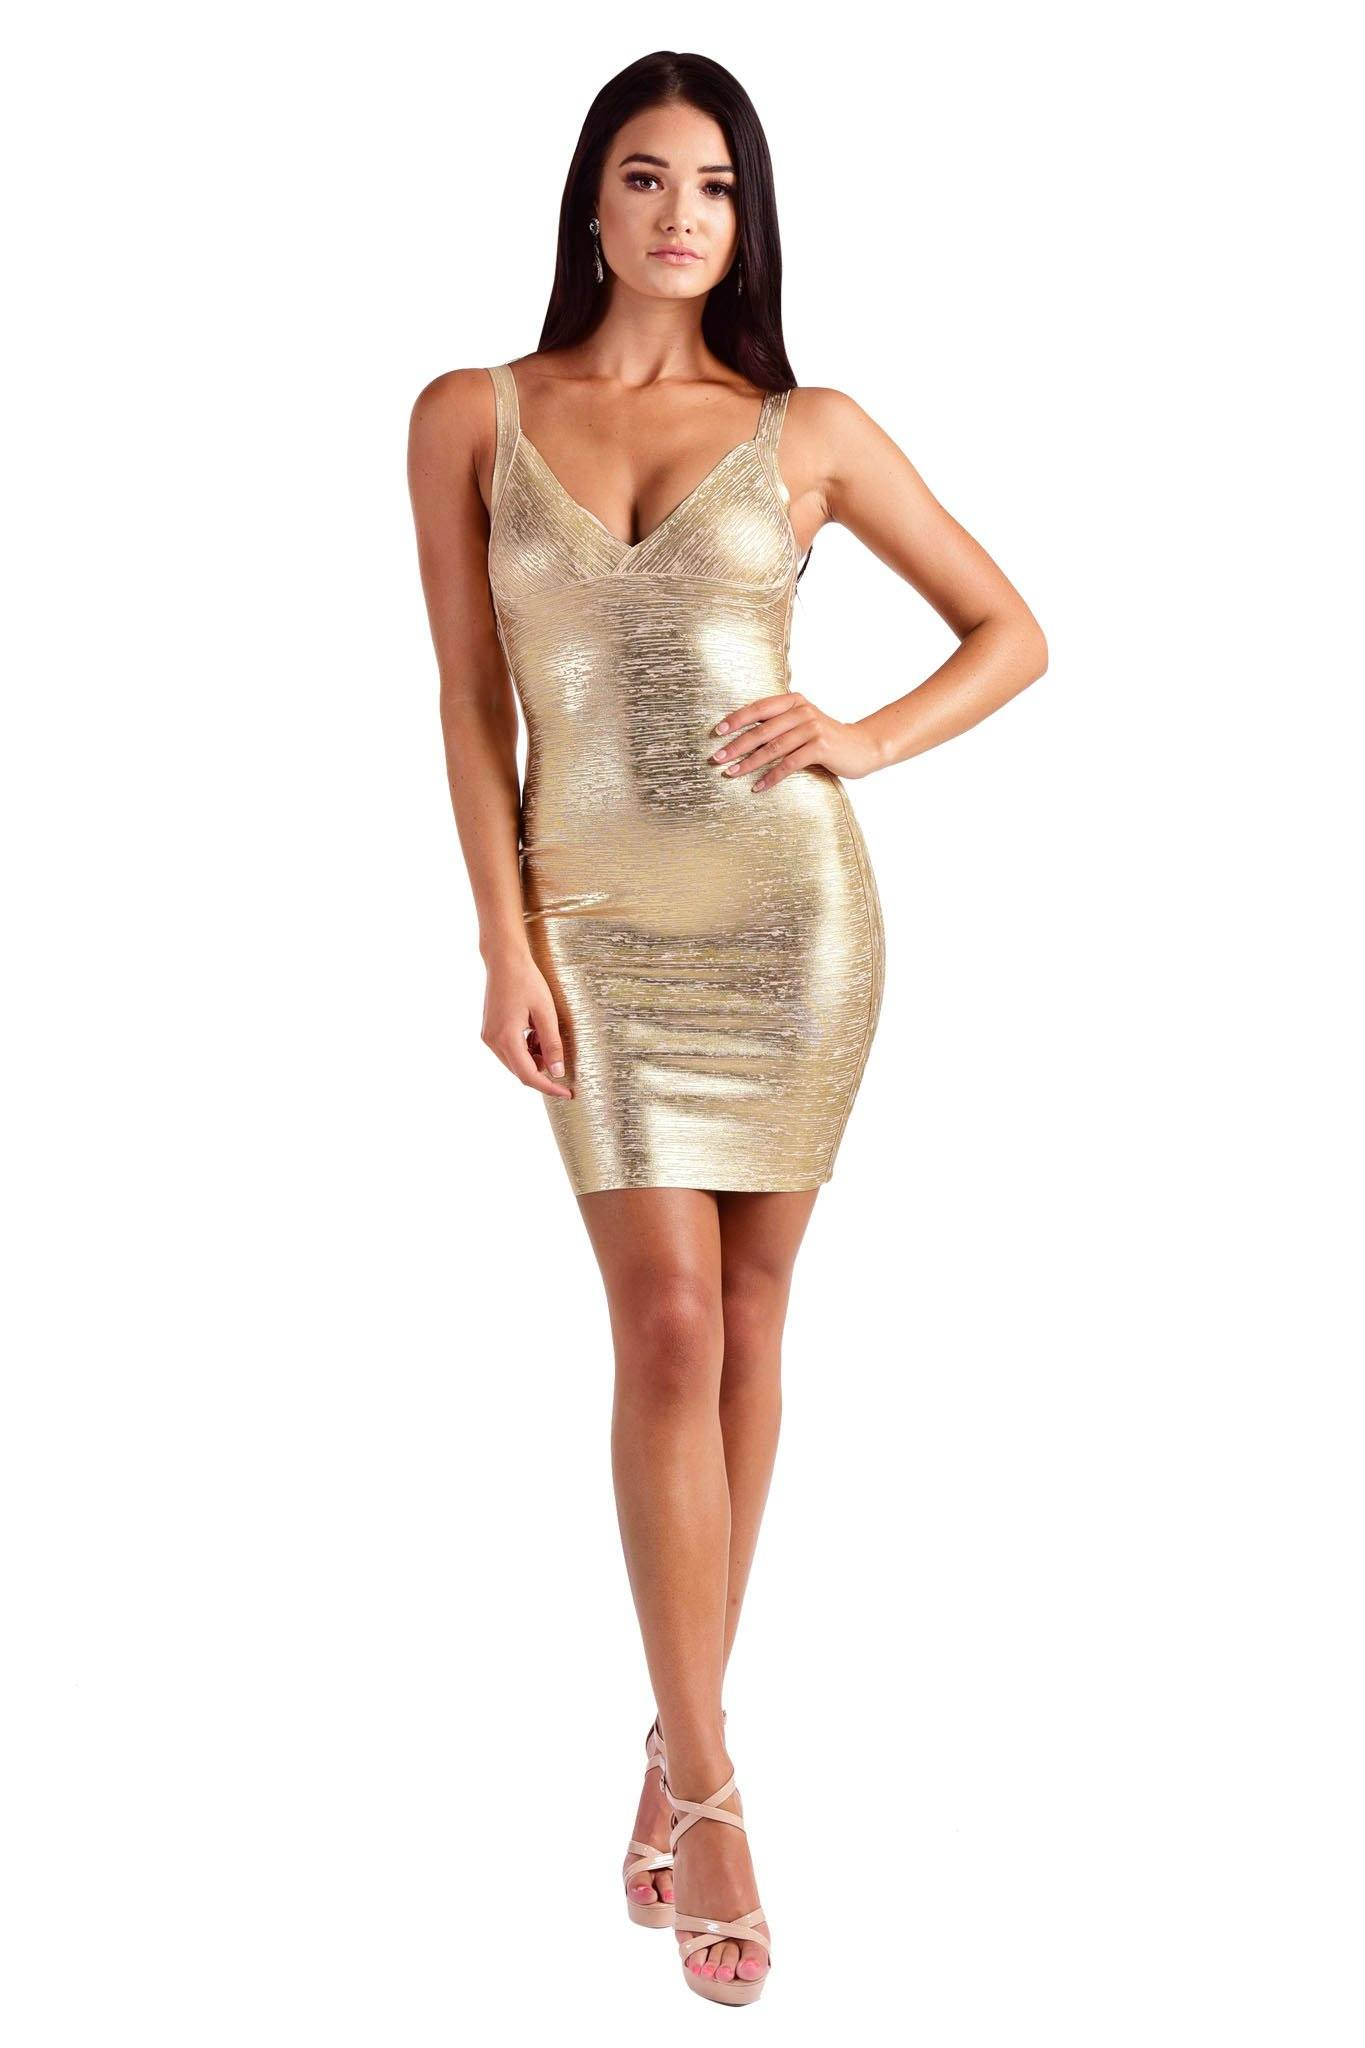 Gold Foil Sleeveless Bandage Dress in Mini Above-Knee Length featuring Deep V Neck and Full Back Zipper